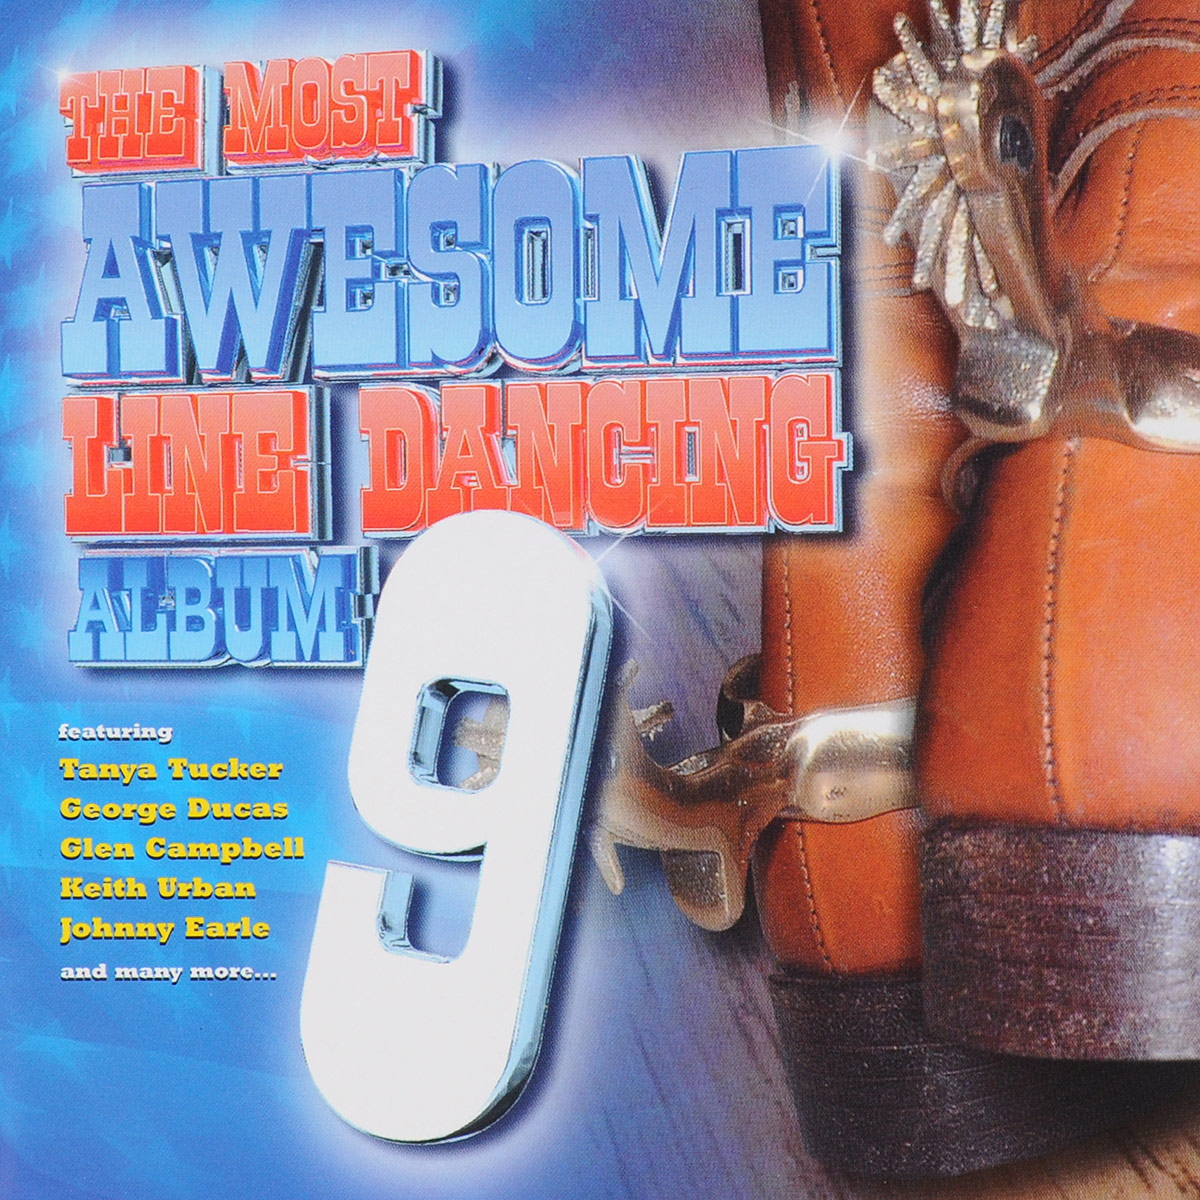 VARIOUS ARTISTS. THE MOST AWESOME LINE DANCE ALBUM 9 виниловая пластинка various artists john morales presents the m